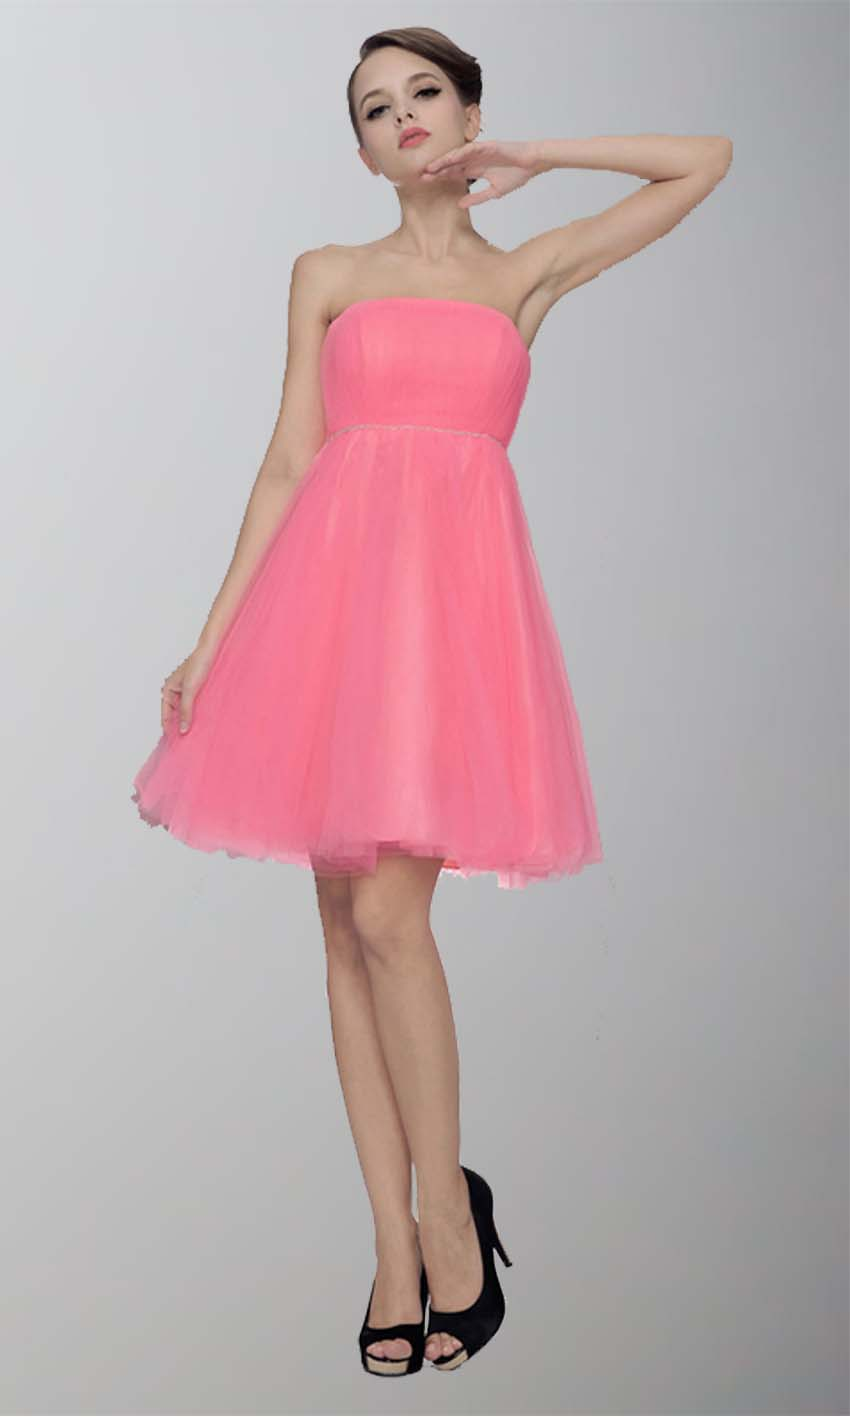 Short A-line Tulle Strapless Homecoming Dress KSP142 [KSP142] - £77.00 : Cheap Prom Dresses Uk, Bridesmaid Dresses, 2014 Prom & Evening Dresses, Look for cheap elegant prom dresses 2014, cocktail gowns, or dresses for special occasions? kissprom.co.uk offers various bridesmaid dresses, evening dress, free shipping to UK etc.